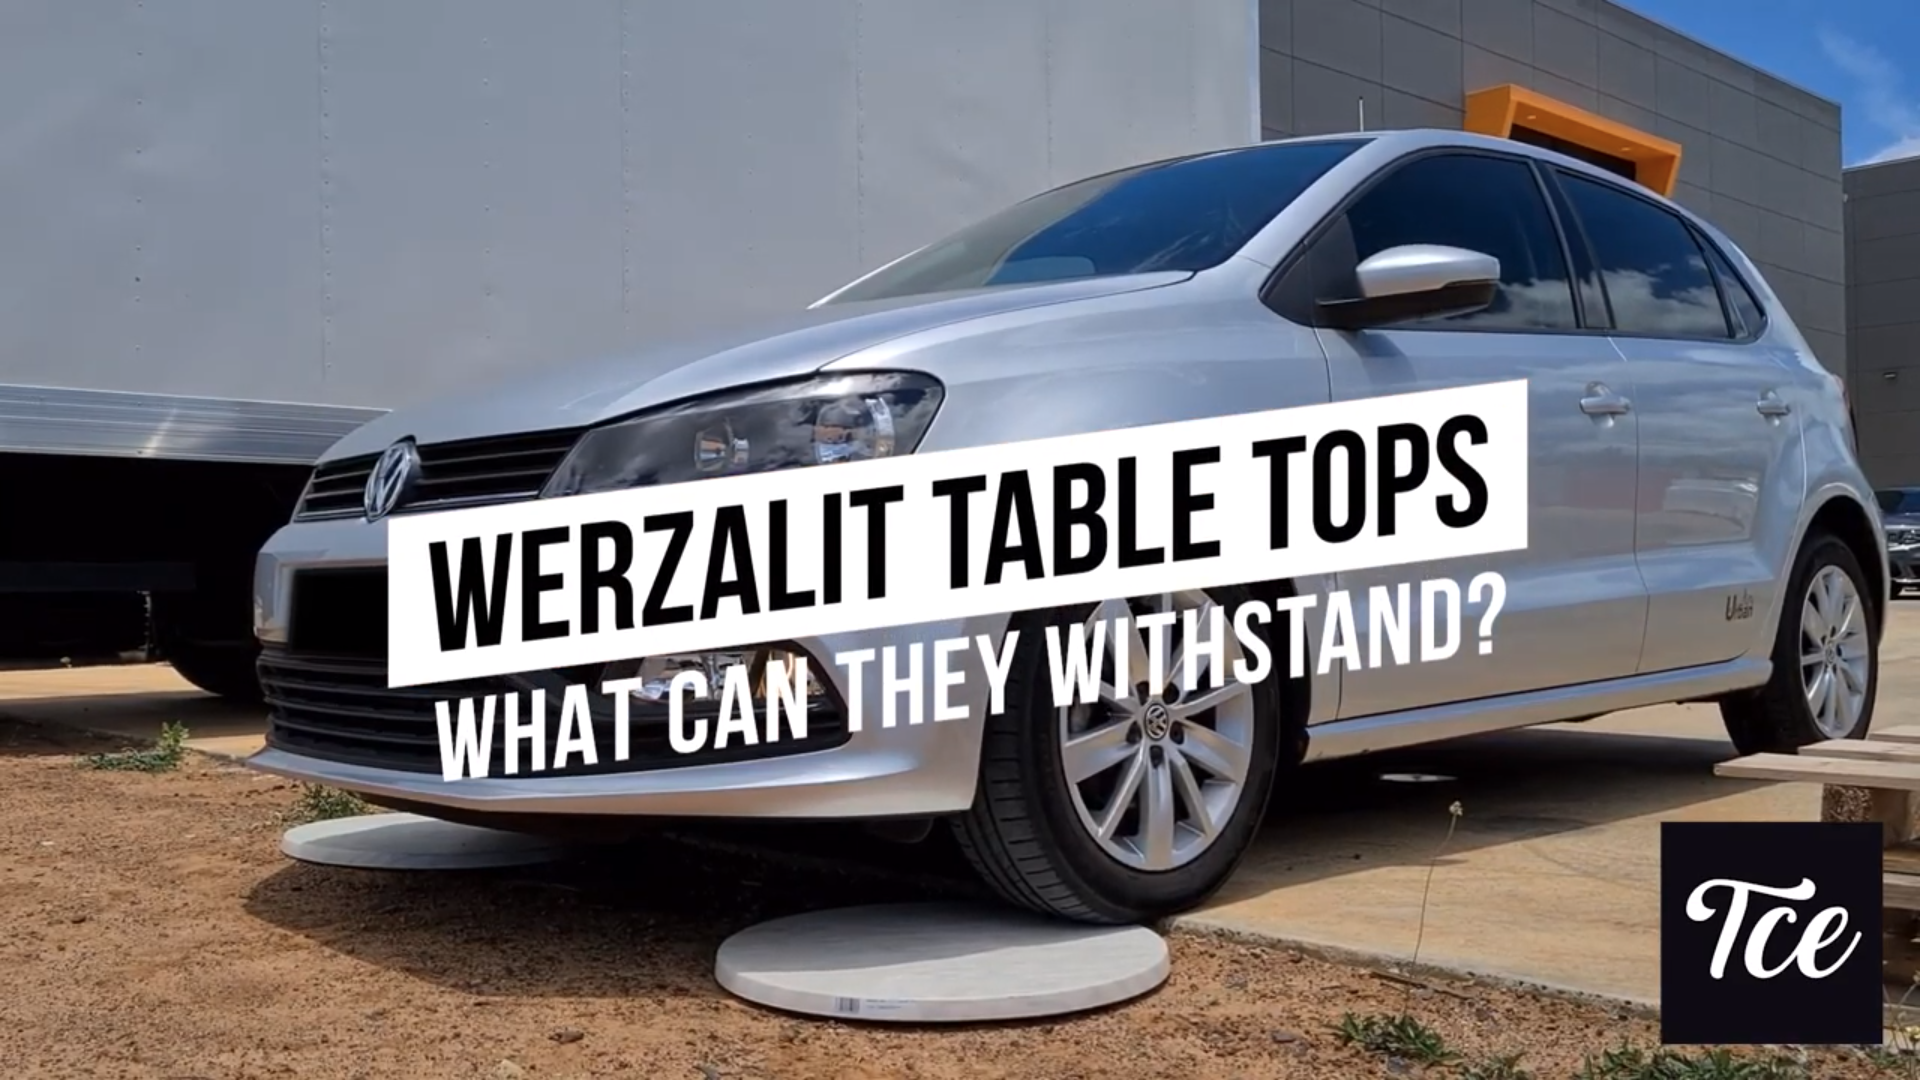 What can a Werzalit Table Top Withstand?